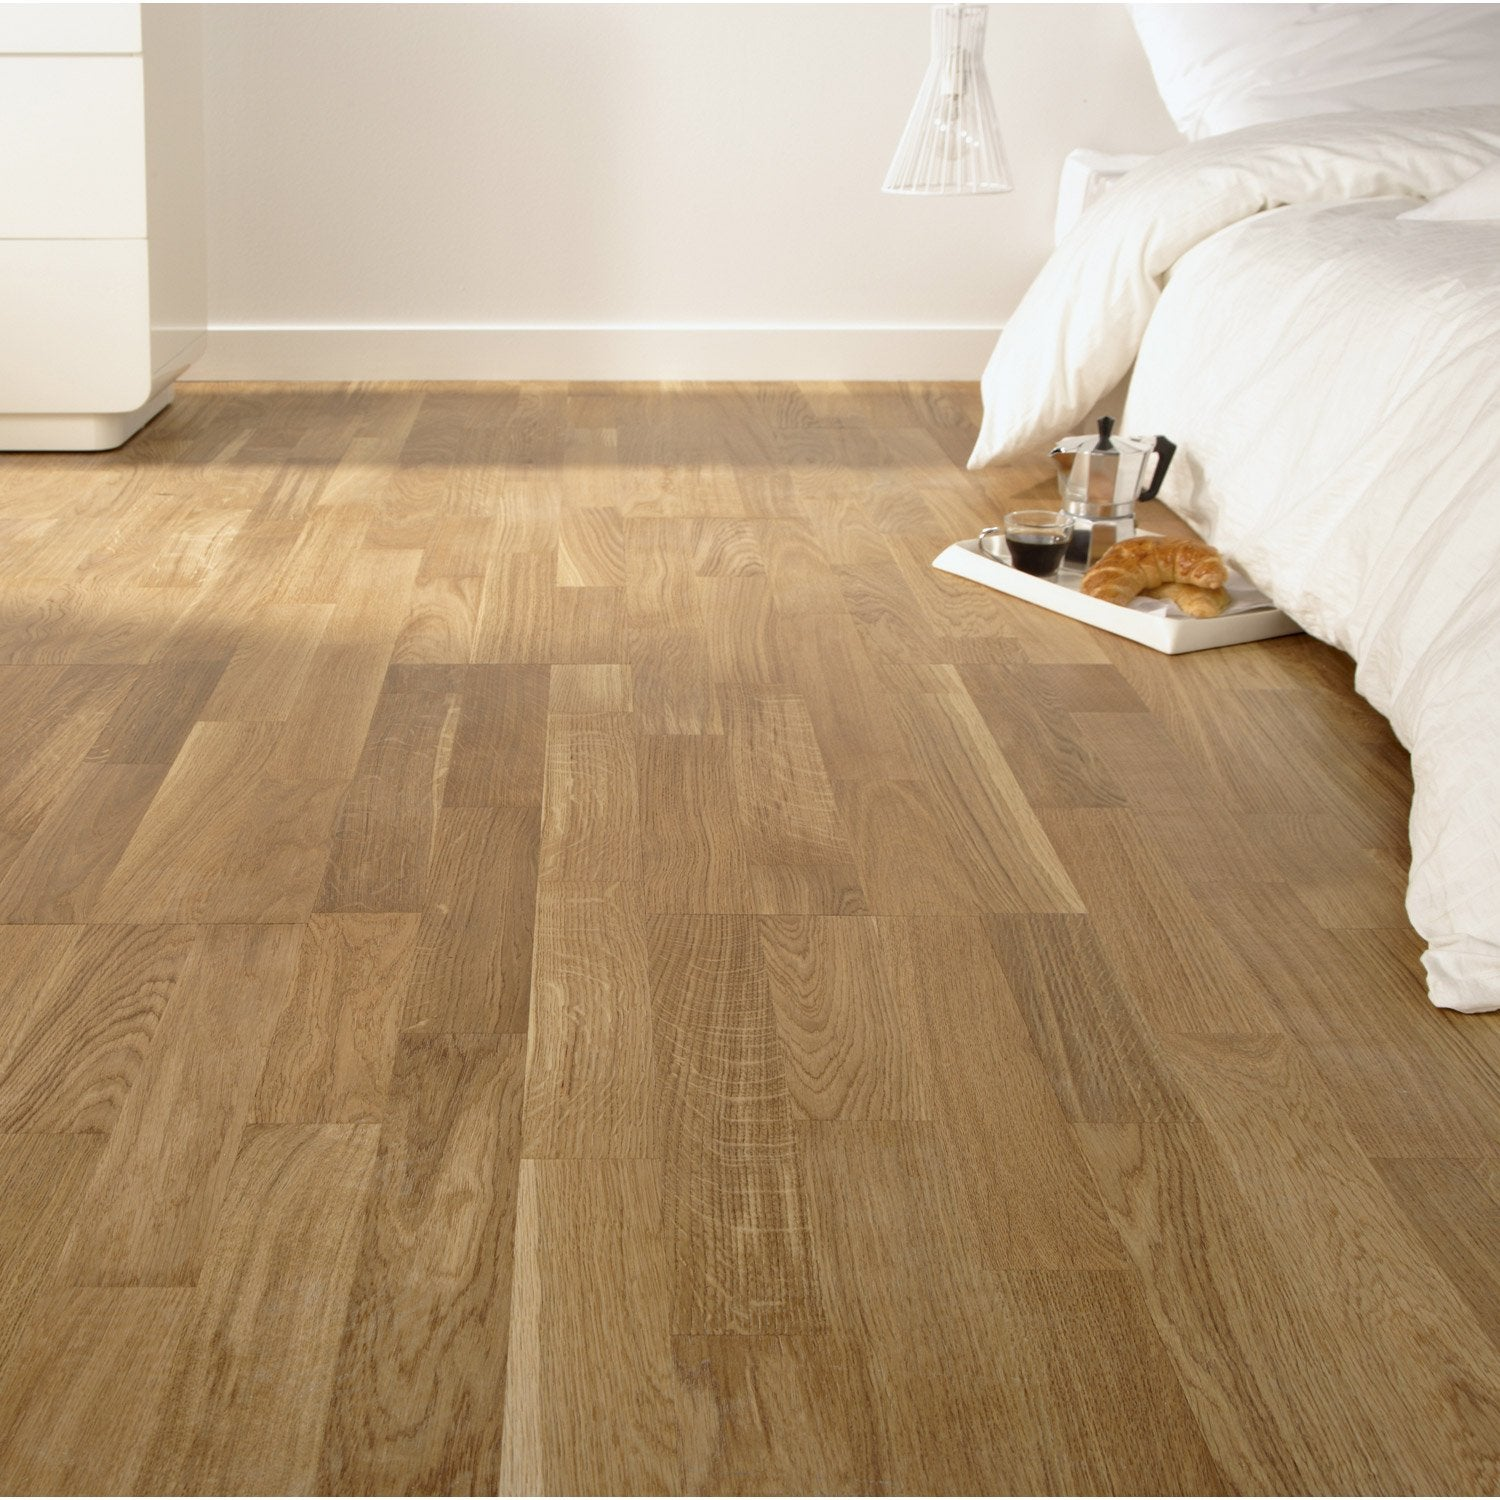 pose d39un parquet flottant ou stratifie jusqu39a 10 m2 par With pose parquet flottant leroy merlin video